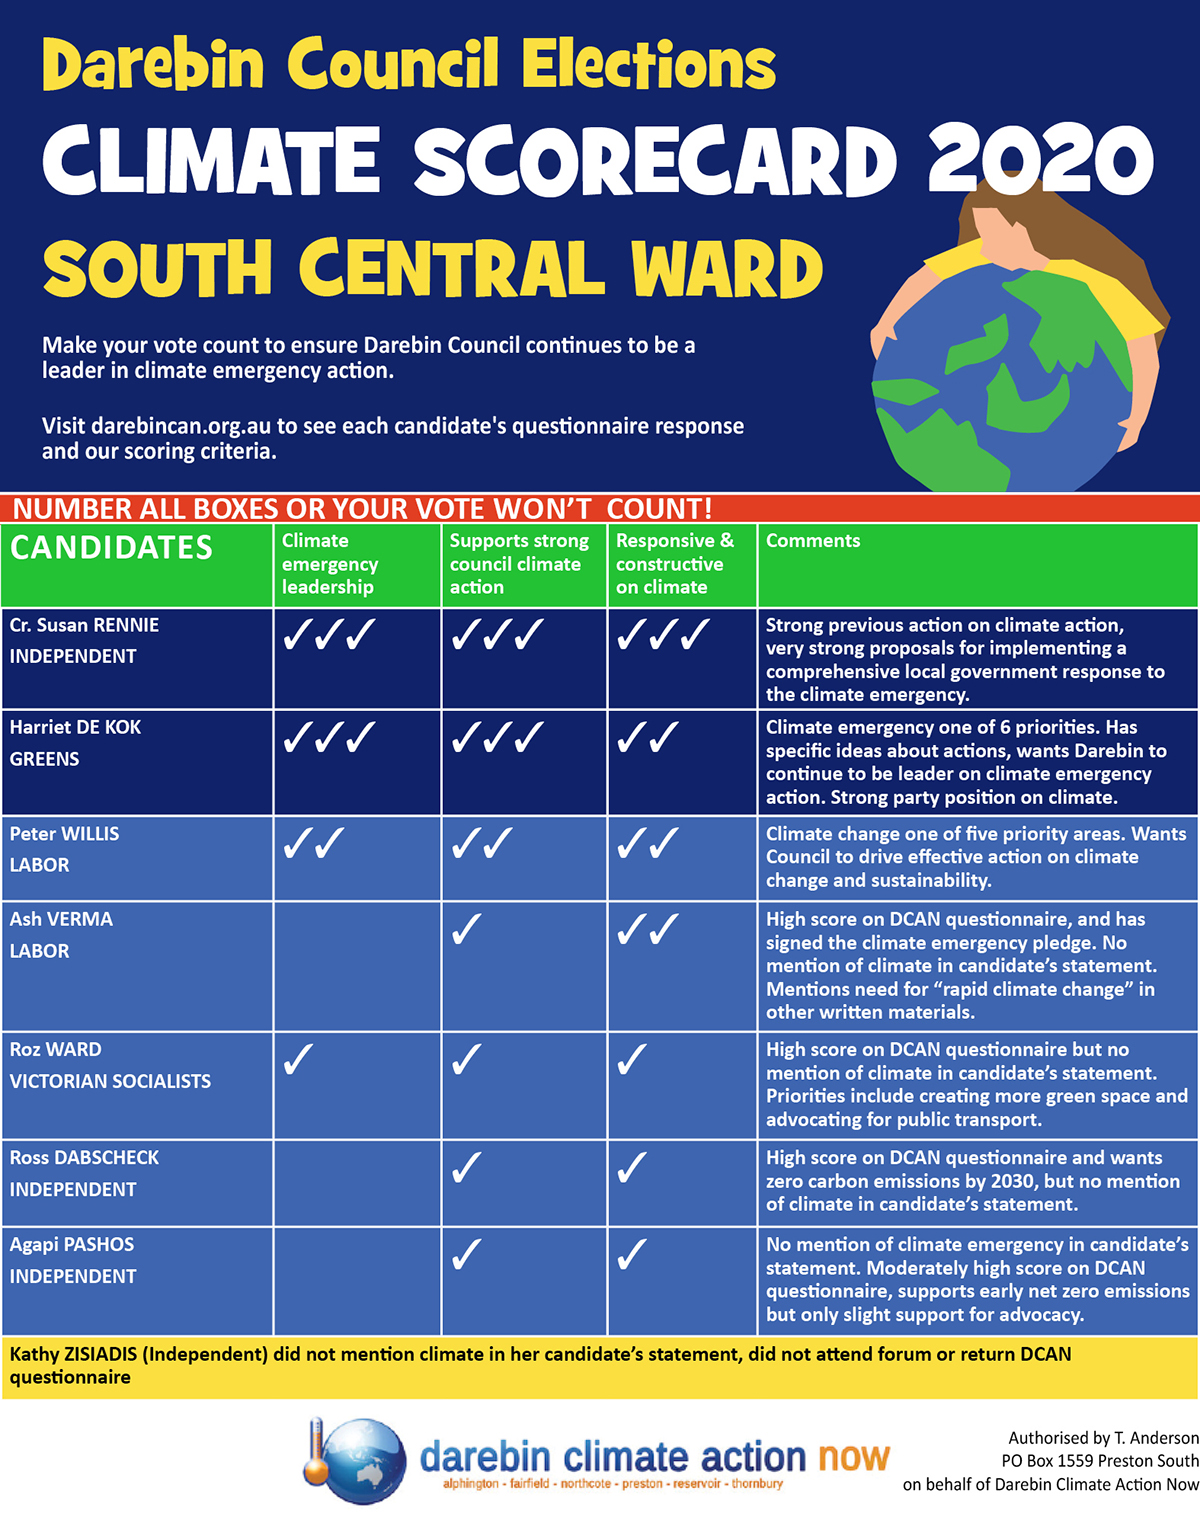 South Central Ward scorecard